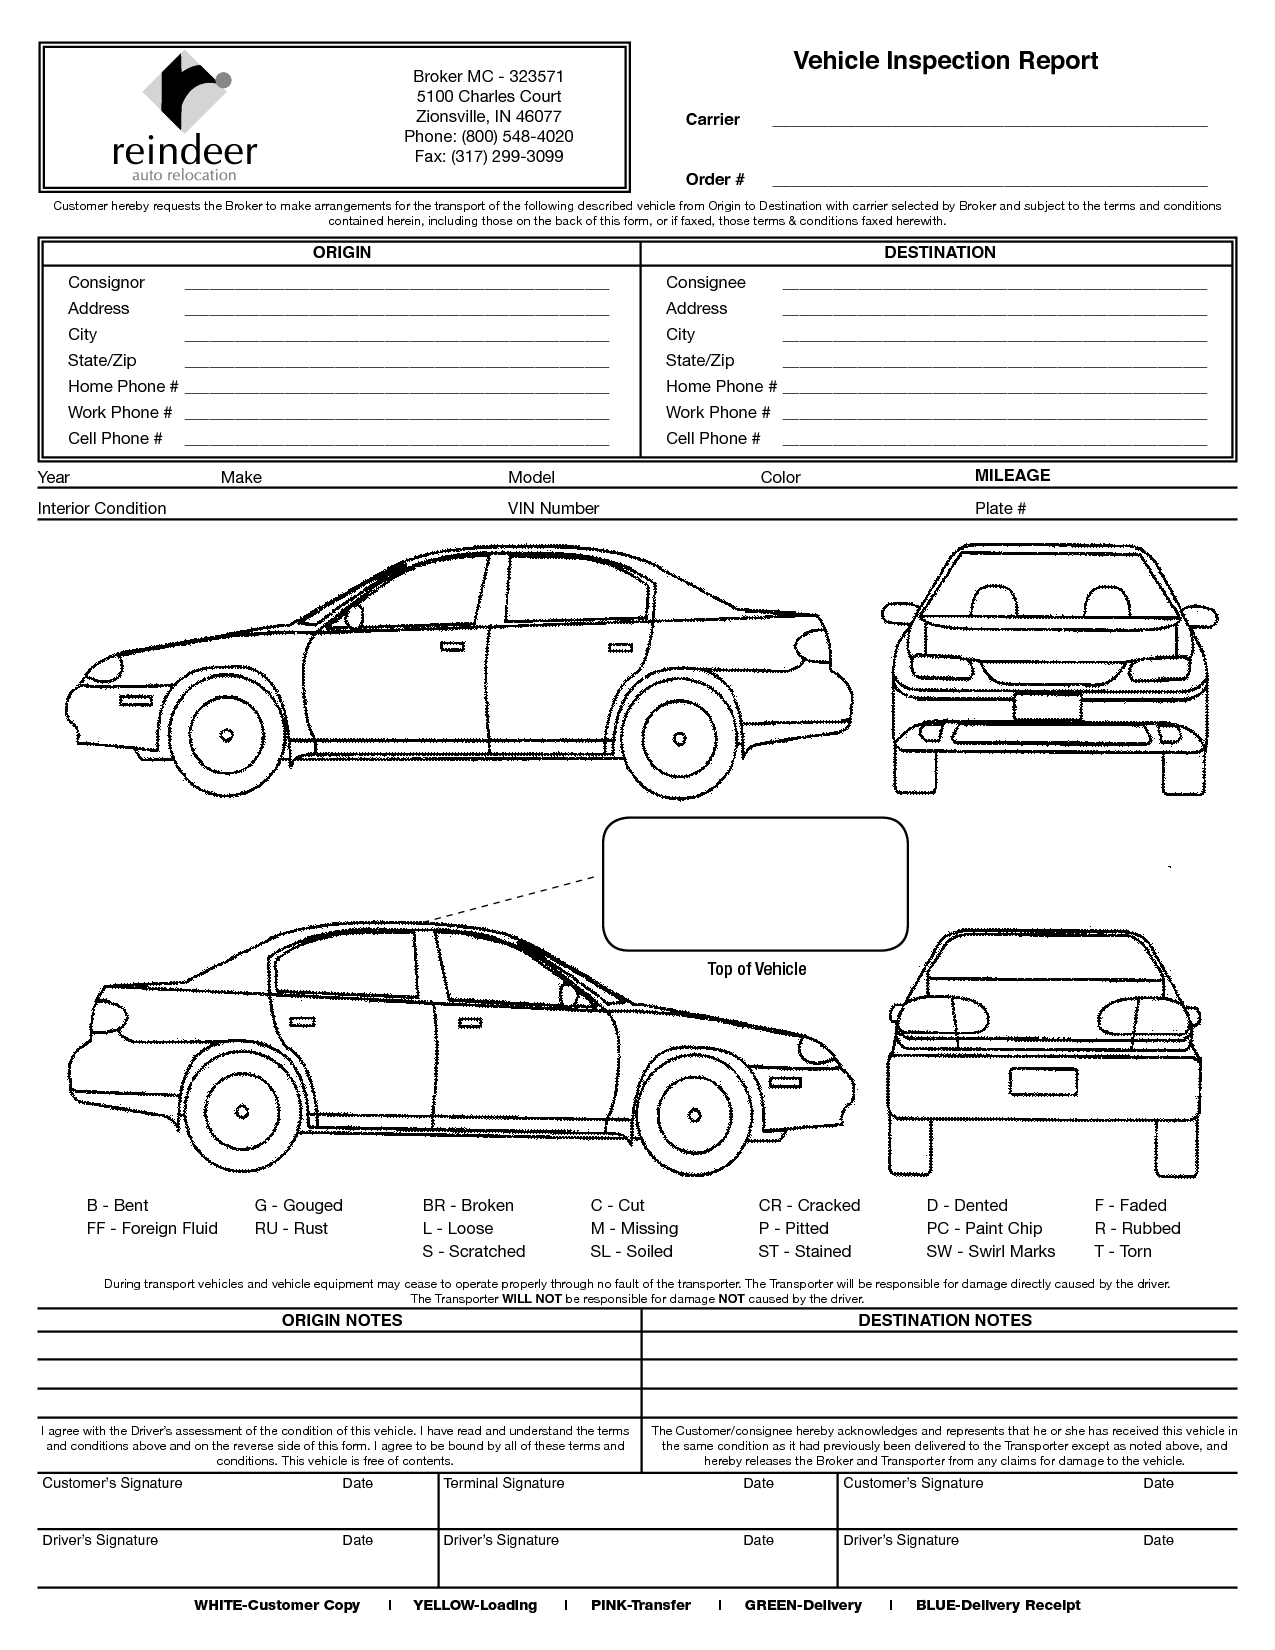 Template Vehicle Inspection Form How To Leave Template Vehicle Inspection Form Without Being Vehicle Inspection Inspection Checklist Free Cars